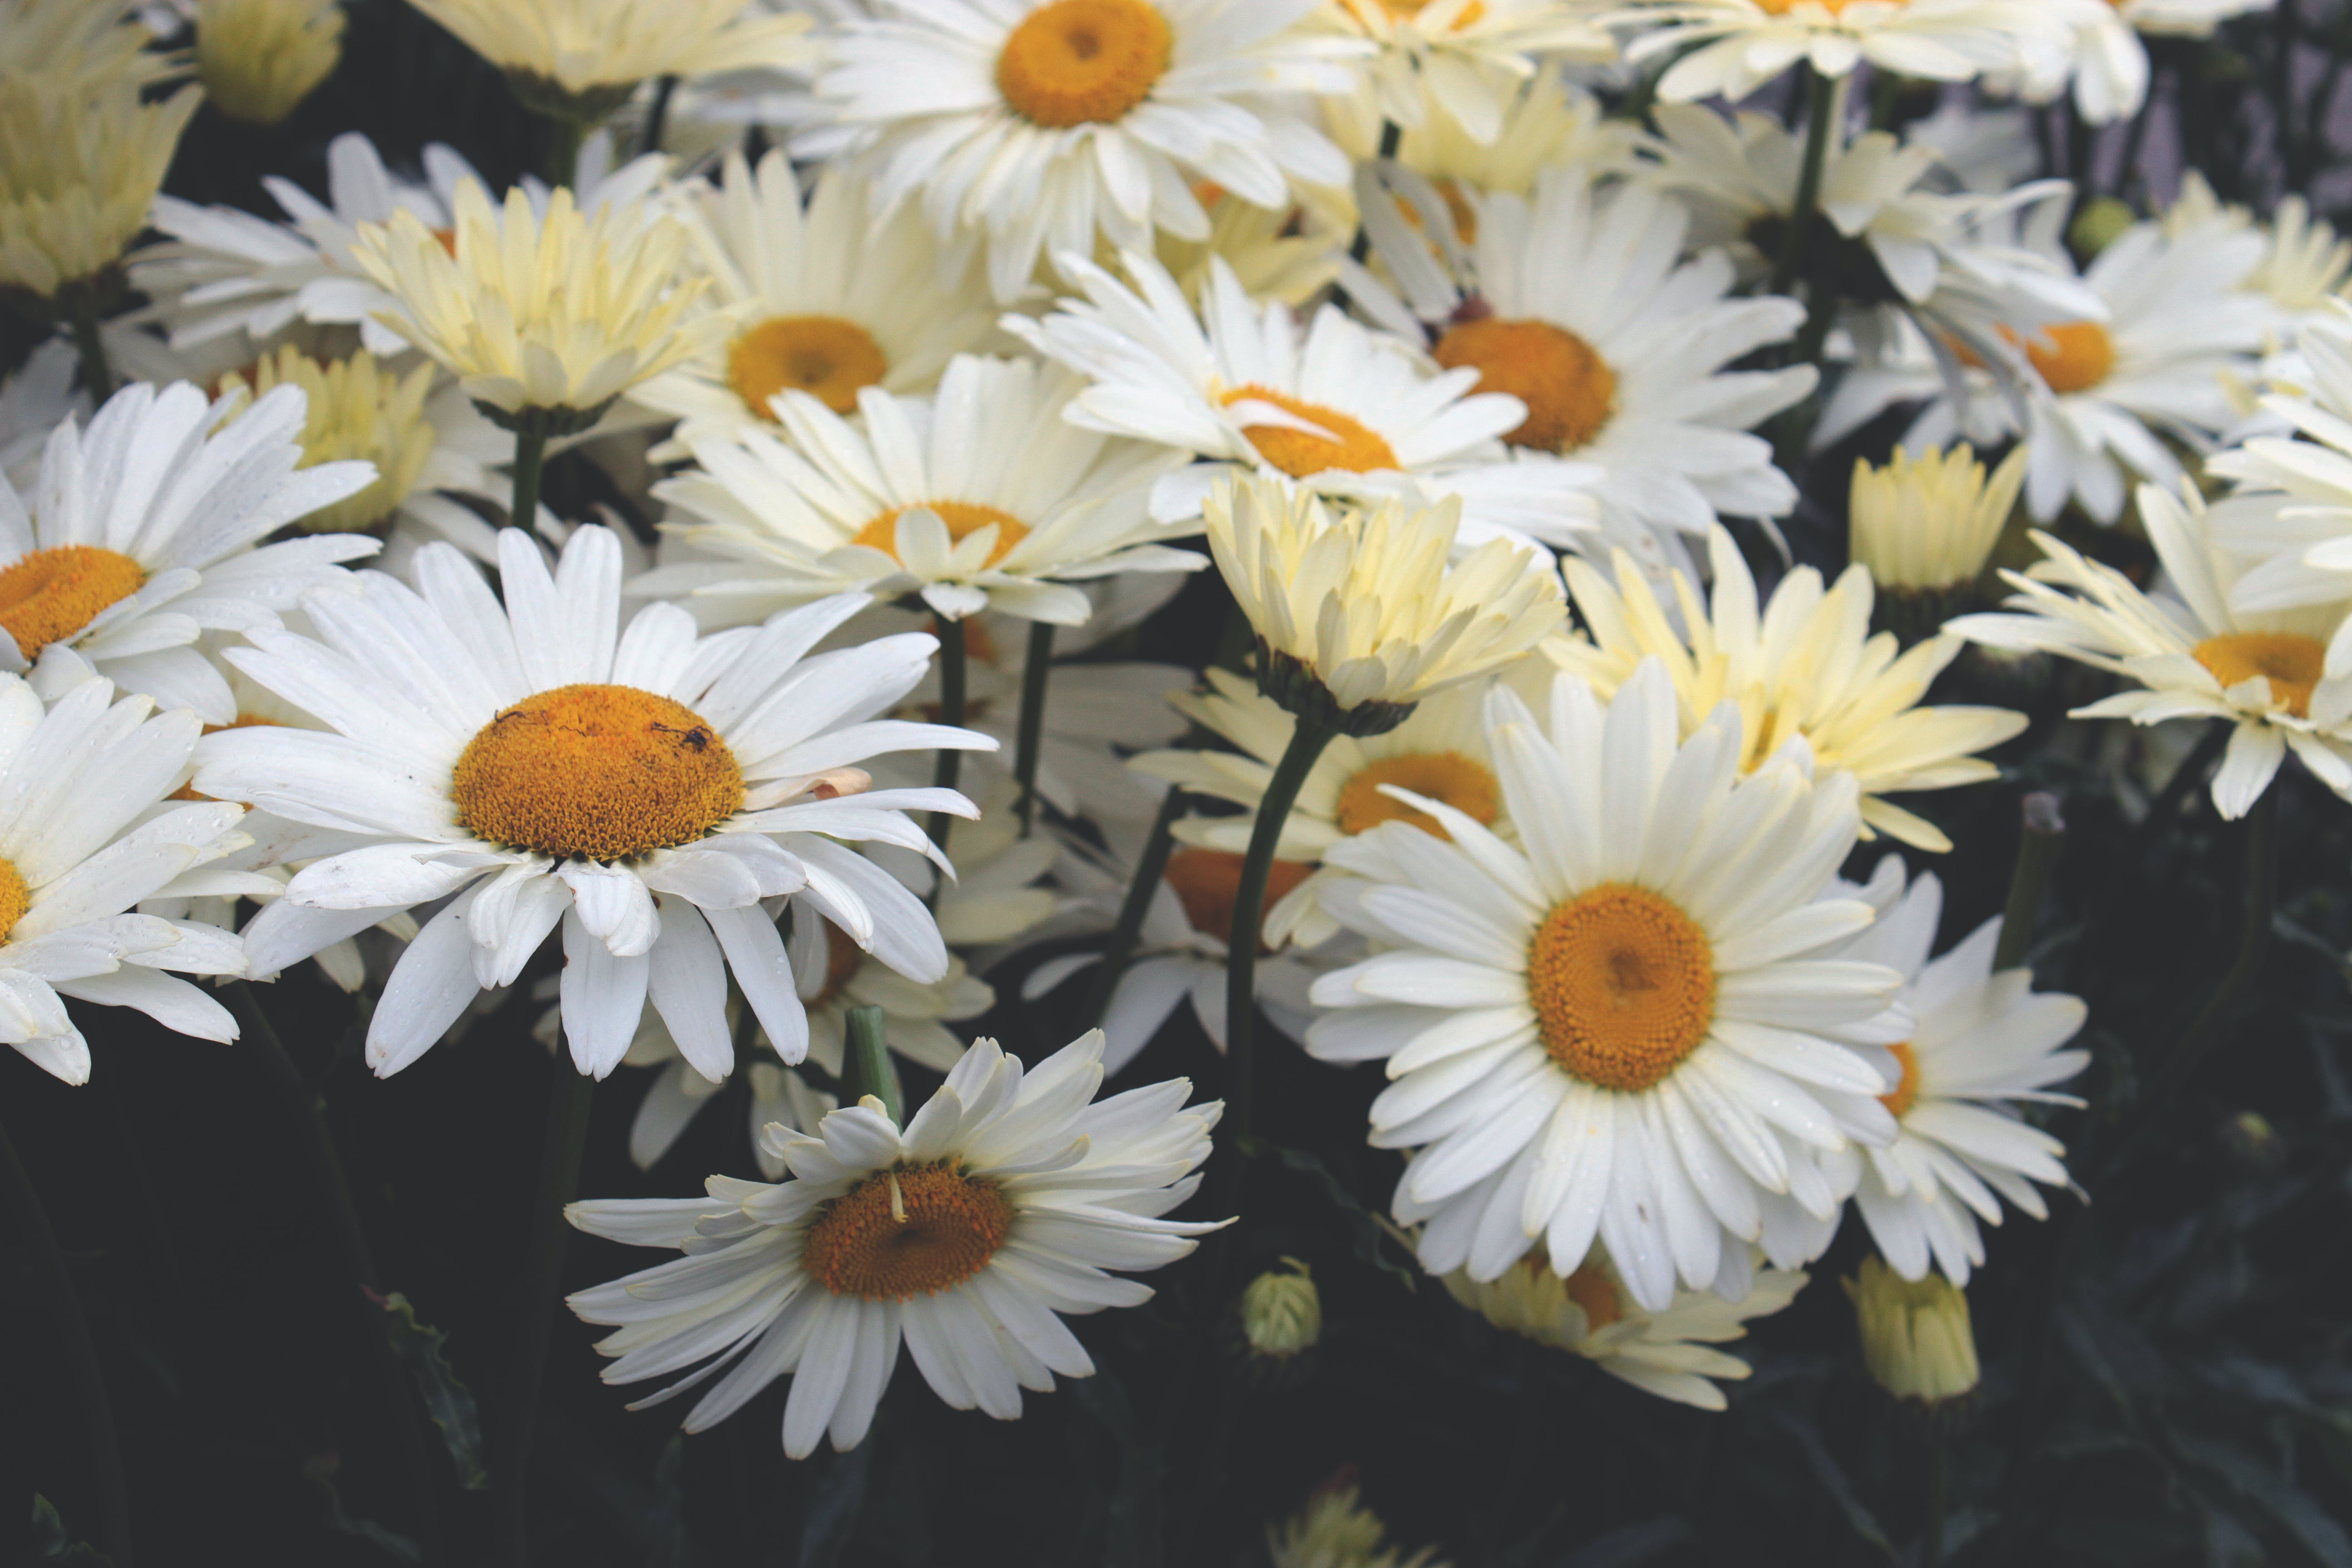 Yellow Daisies Closeup Photography at Daytime